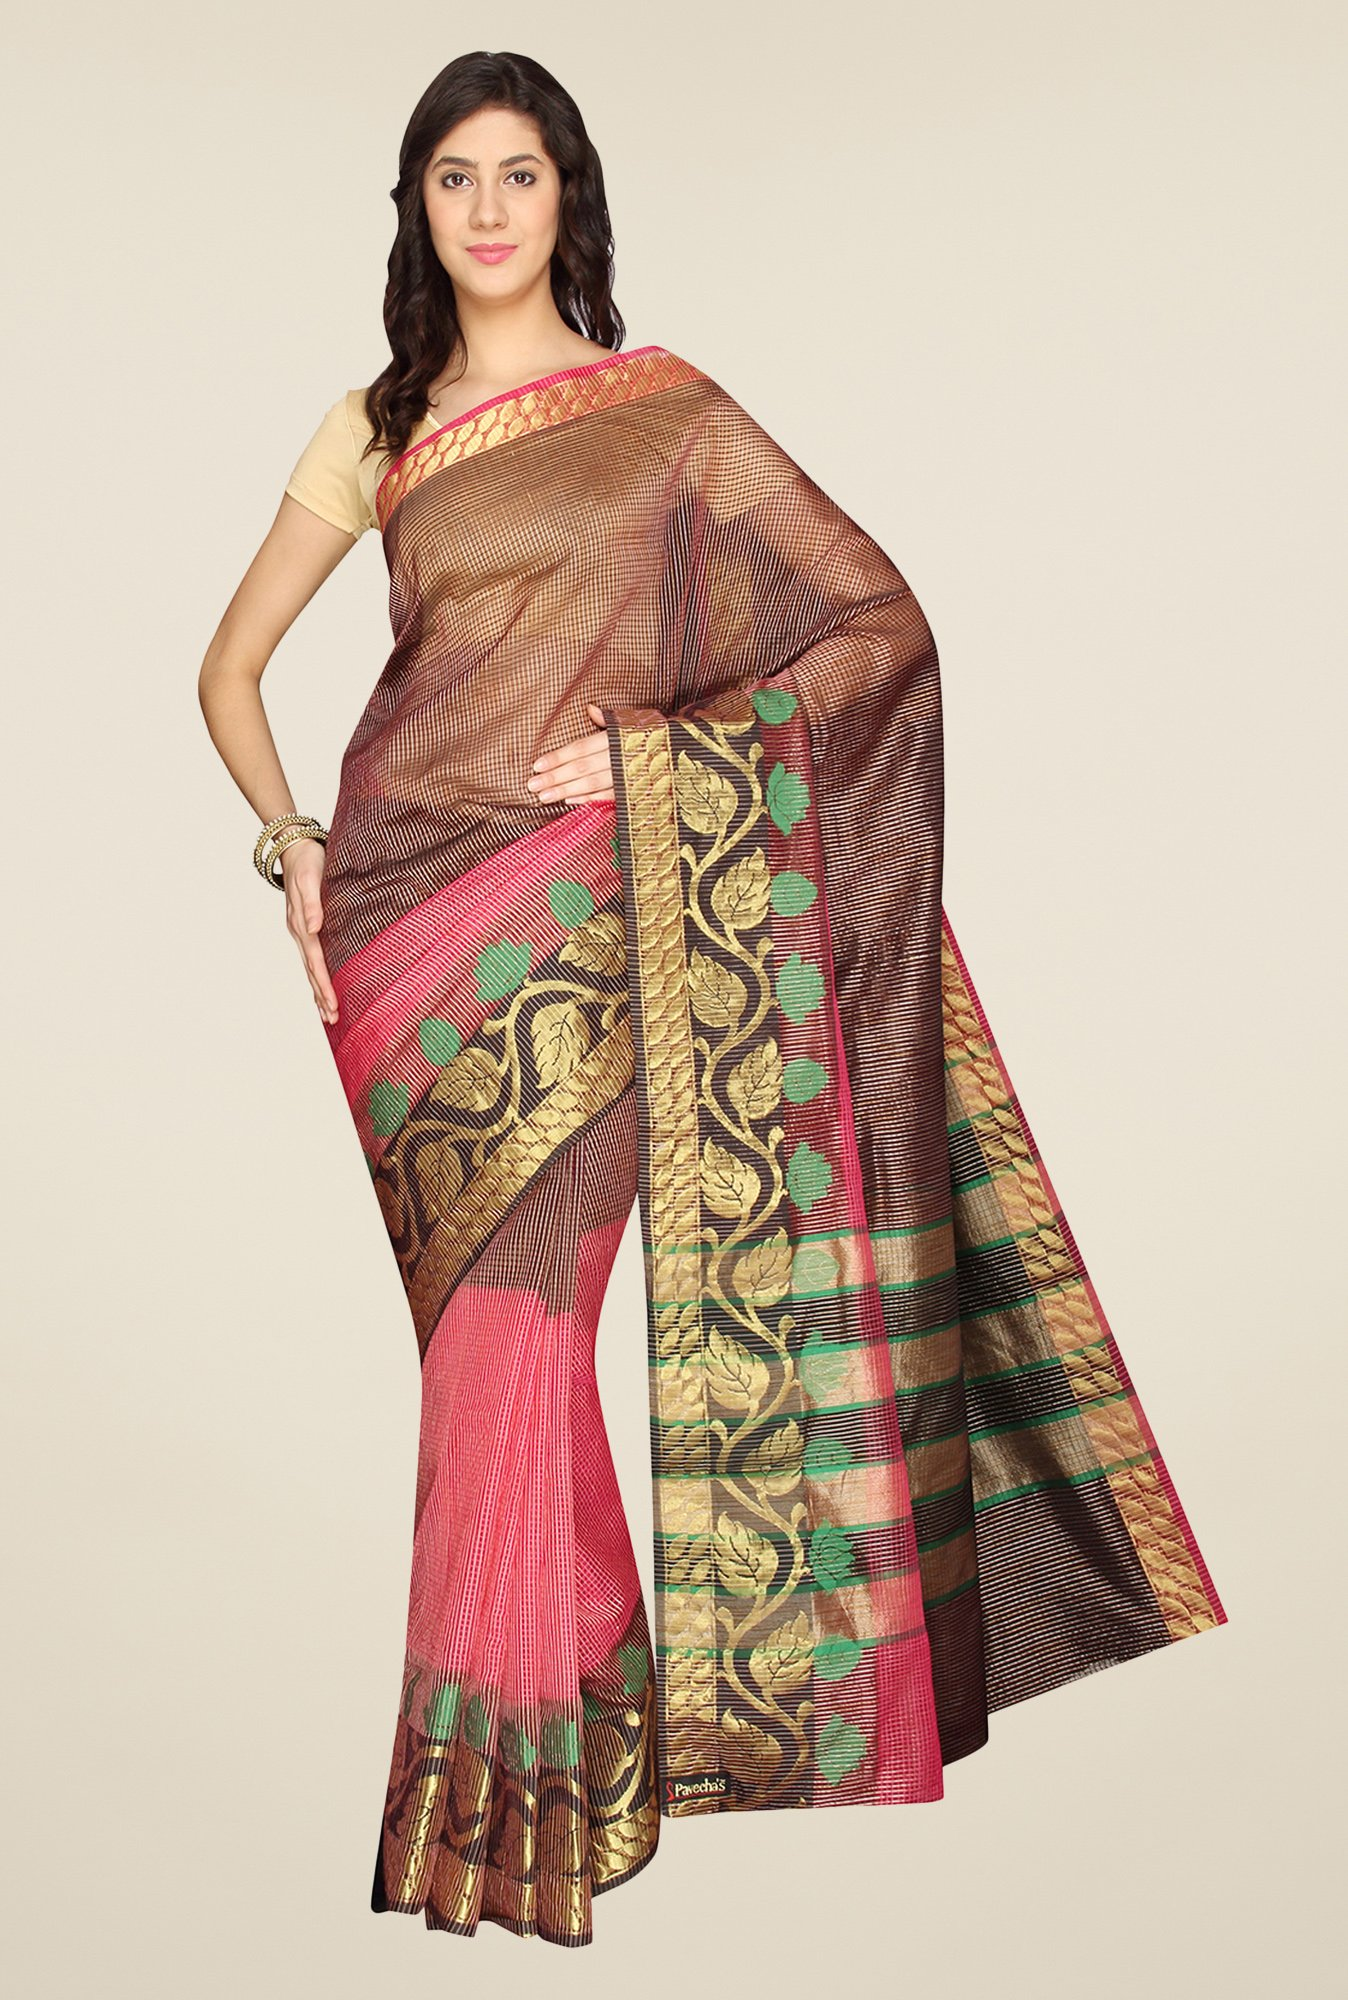 Pavecha's Pink & Black Banarasi Silk Cotton Blend Saree